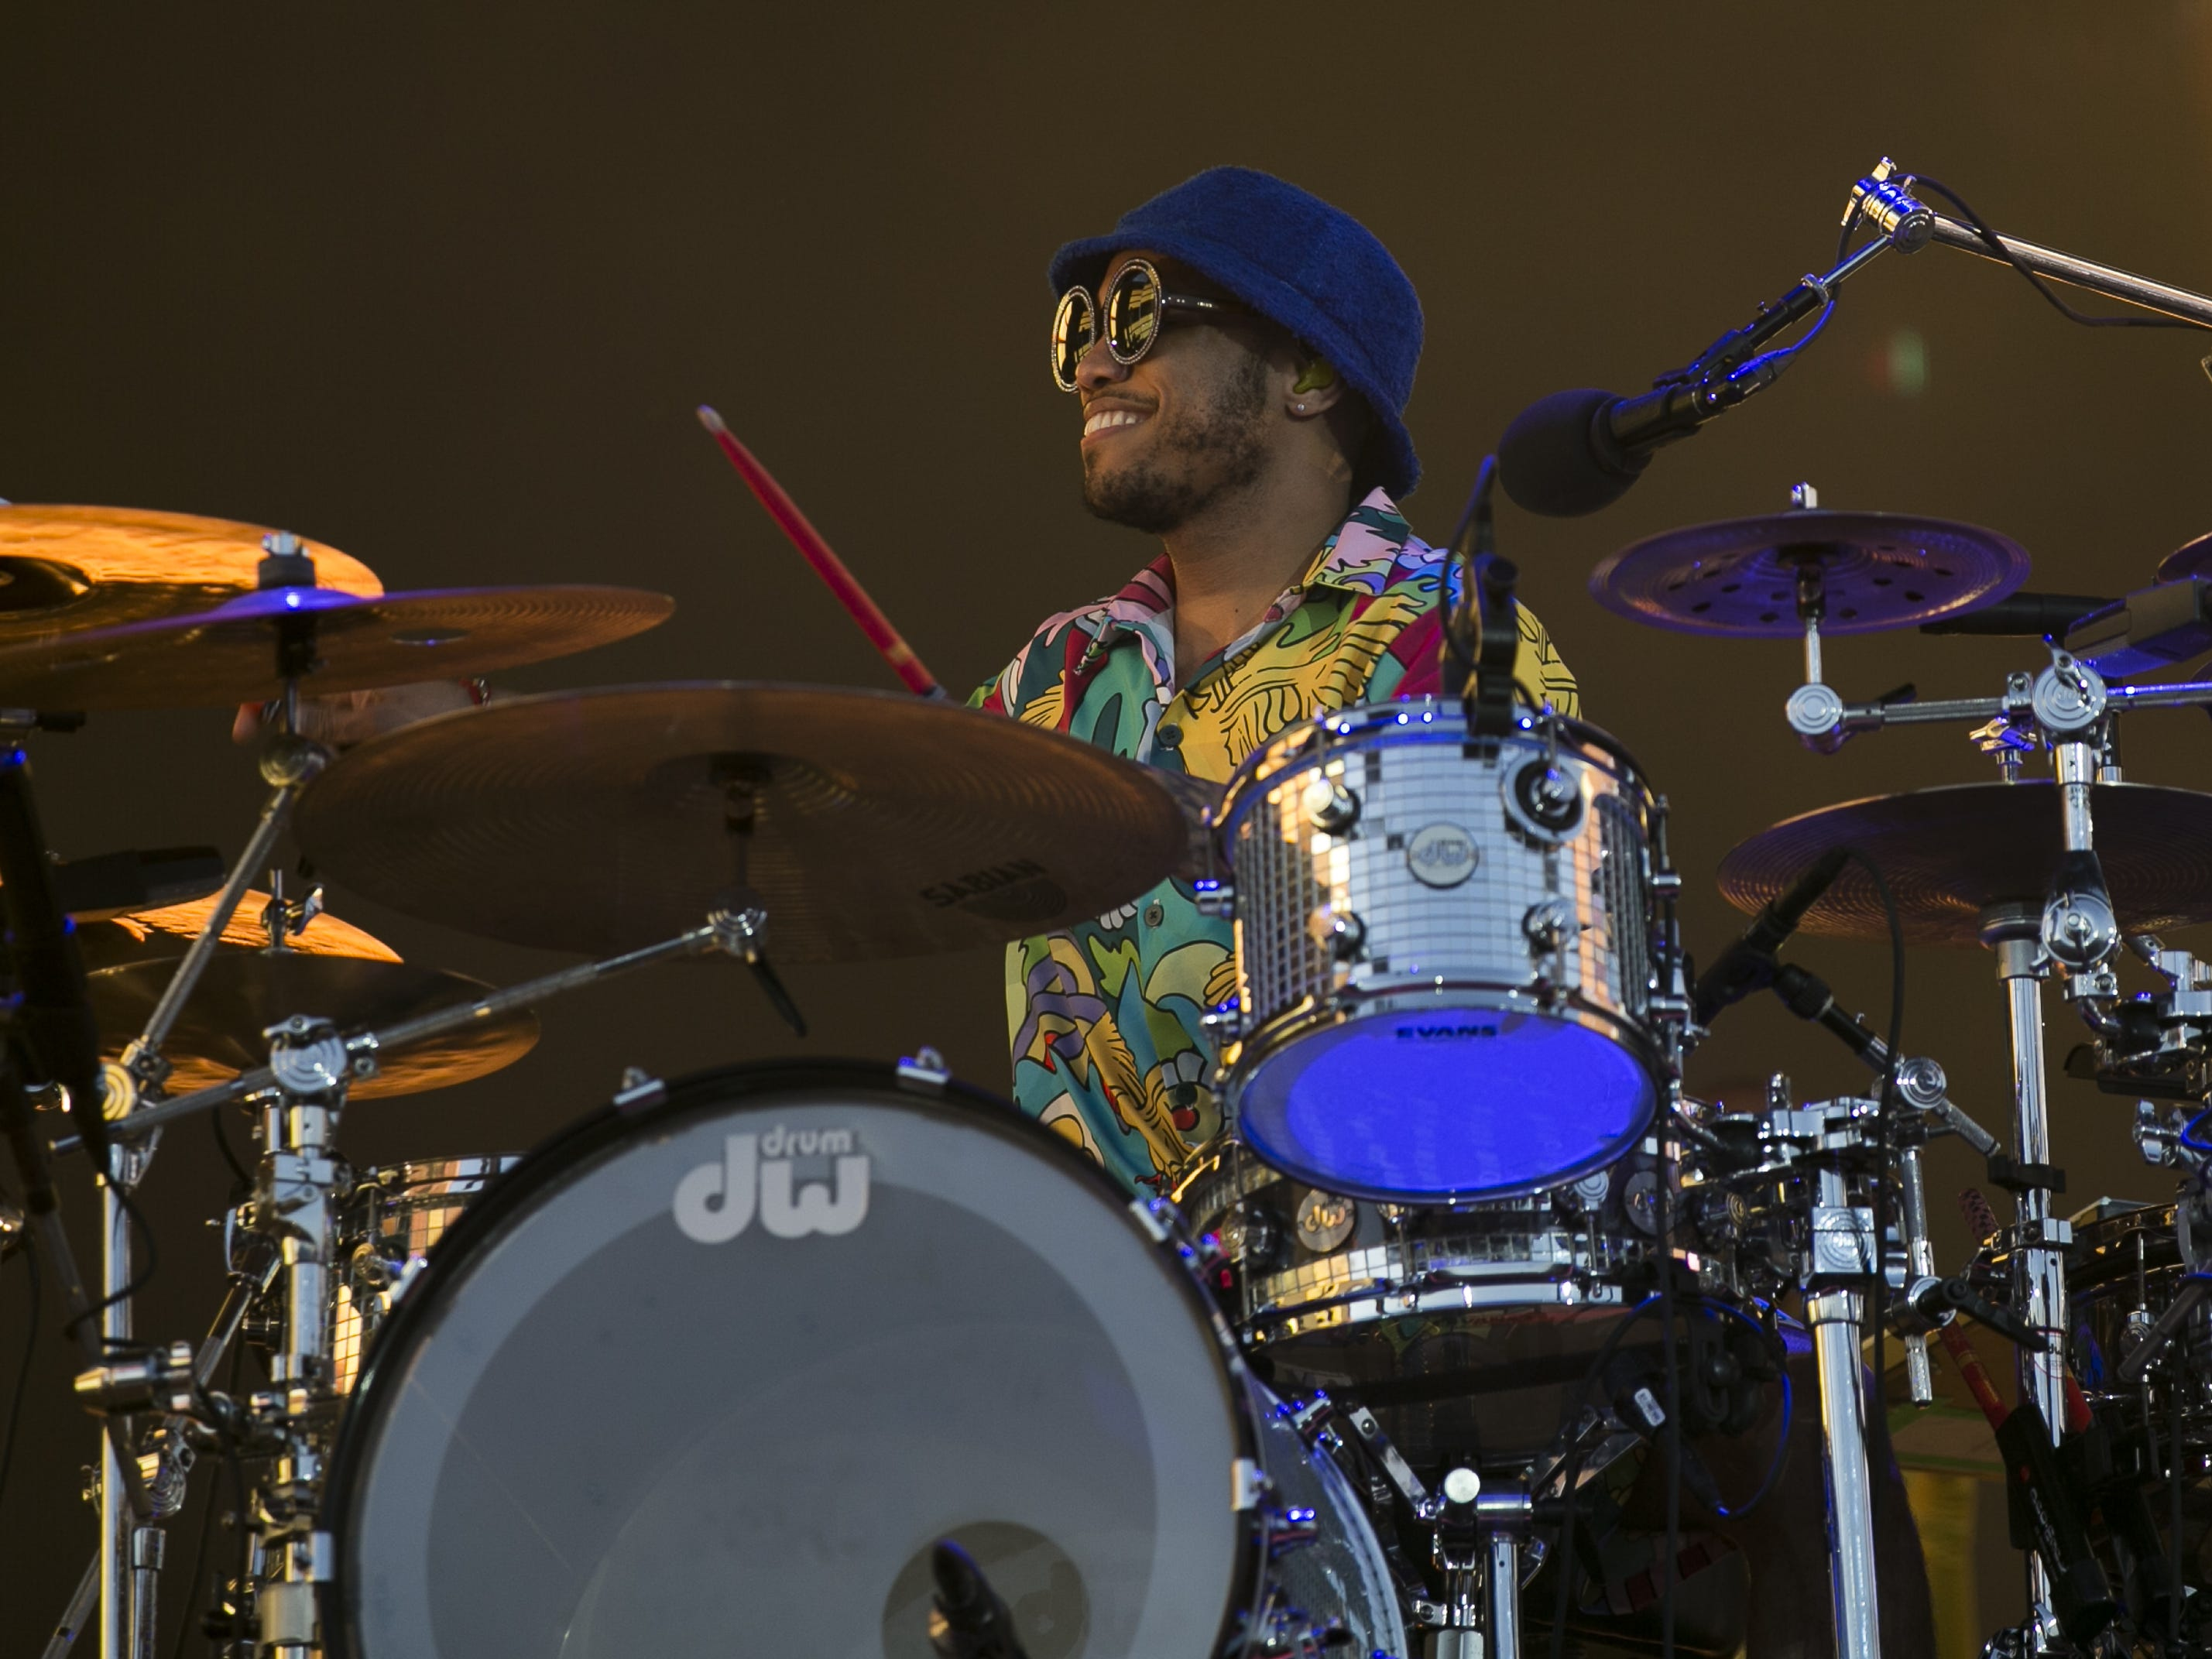 Anderson .Paak and The Free Nationals perform on stage at the Coachella Valley Music and Arts Festival in Indio, Calif. on April 12, 2019.